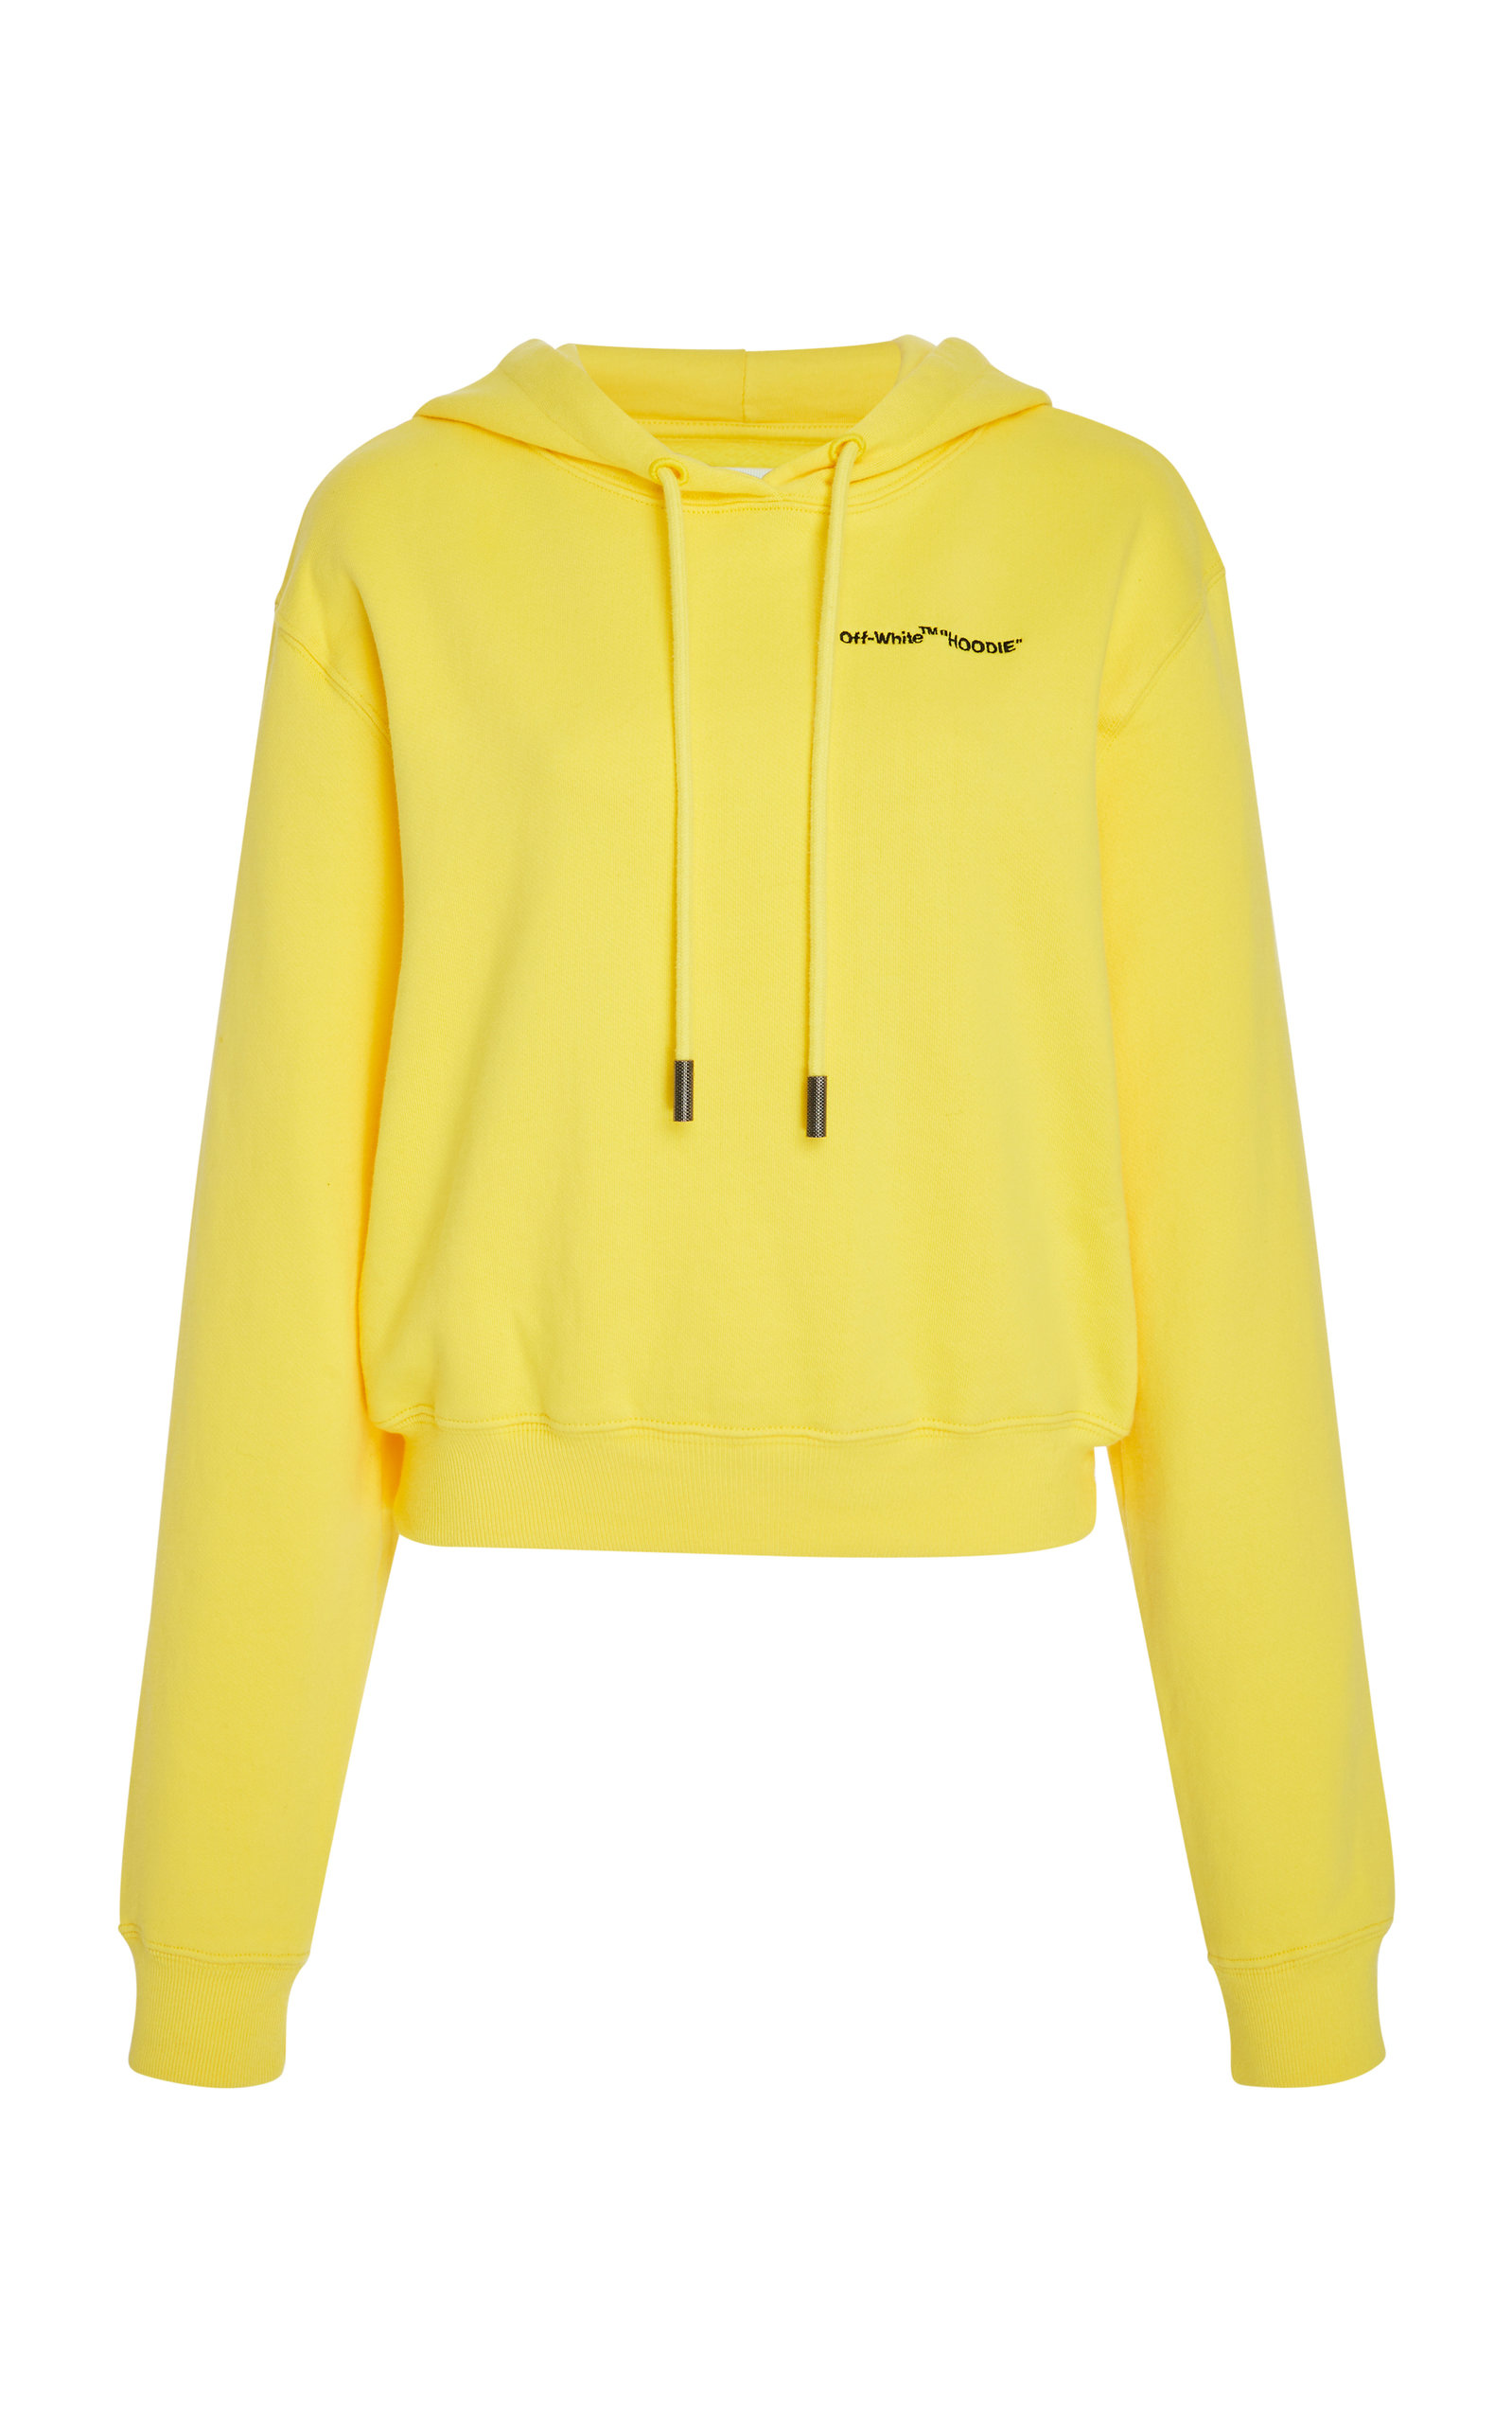 71d02e0778b53b Off-White c o Virgil AblohCropped Printed Cotton-Jersey Hooded Sweatshirt.  CLOSE. Loading